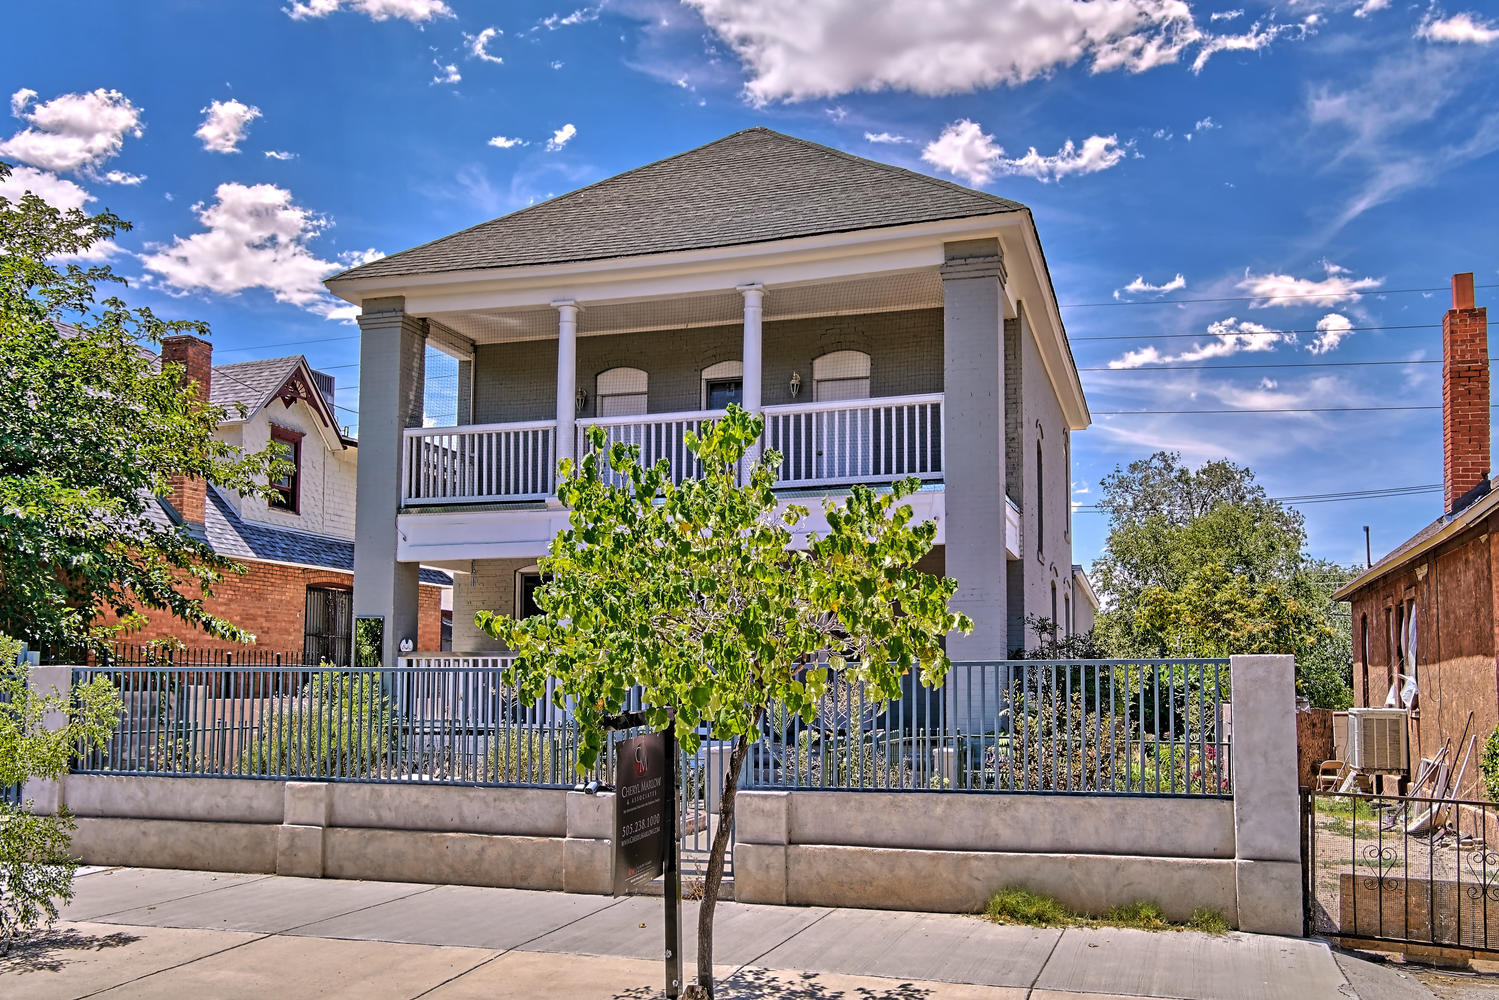 Beautiful home w/ Victorian details in Historic Hunning highlands neighborhood!Gorgeous hardwood floors invite you into the spacious LR,DR,FR heart of the home.! Fresh paint through out! Updated kitchen features abundant cabinetry/plant bay window over the sink/tile counters/high end 4 burner wolf range plus griddle! Large Eat in kitchen area w/bay window! LL has storage space for ideal for Wine or home canning. 2nd UL has dual owners suites & a huge patio cover deck off east BR. Third level with dormer windows could be BR, home office or whatever you desire and offers a 3/4 updated bath. Rear yard offer spacious bricked open patio fire place and A HUGE workshop w/ abundant storage/shelving/& room for anything! Close to UNM, Hospitals & all that Downtown has to offer!